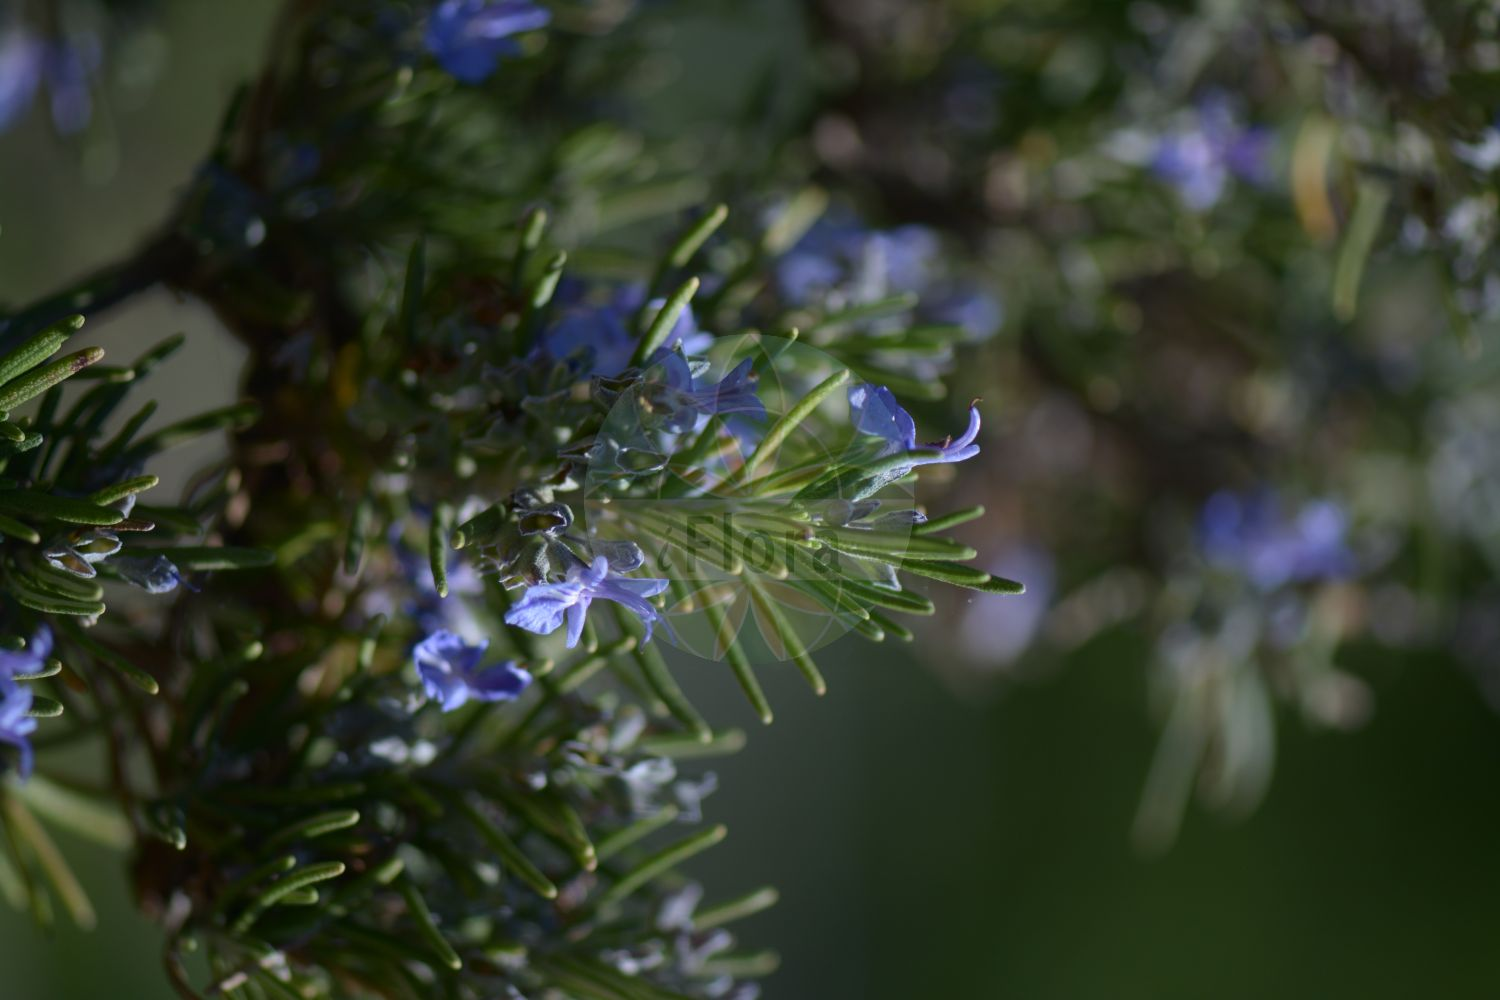 Foto von Rosmarinus officinalis (Echter Rosmarin - Rosemary). Das Bild zeigt Blatt und Bluete. Das Foto wurde in Kopenhagen, Daenemark aufgenommen. ---- Photo of Rosmarinus officinalis (Echter Rosmarin - Rosemary).The image is showing leaf and flower.The picture was taken in Copenhagen, Denmark.(Rosmarinus officinalis,Echter Rosmarin,Rosemary,subsp. laxiflorus,Rosmarin,Garden Moorwort,Rosmarinus,Rosmarin,Rosemary,Lamiaceae,Lippenbluetengewaechse;Lippenbluetler,Nettle family,Blatt,Bluete,leaf,flower)